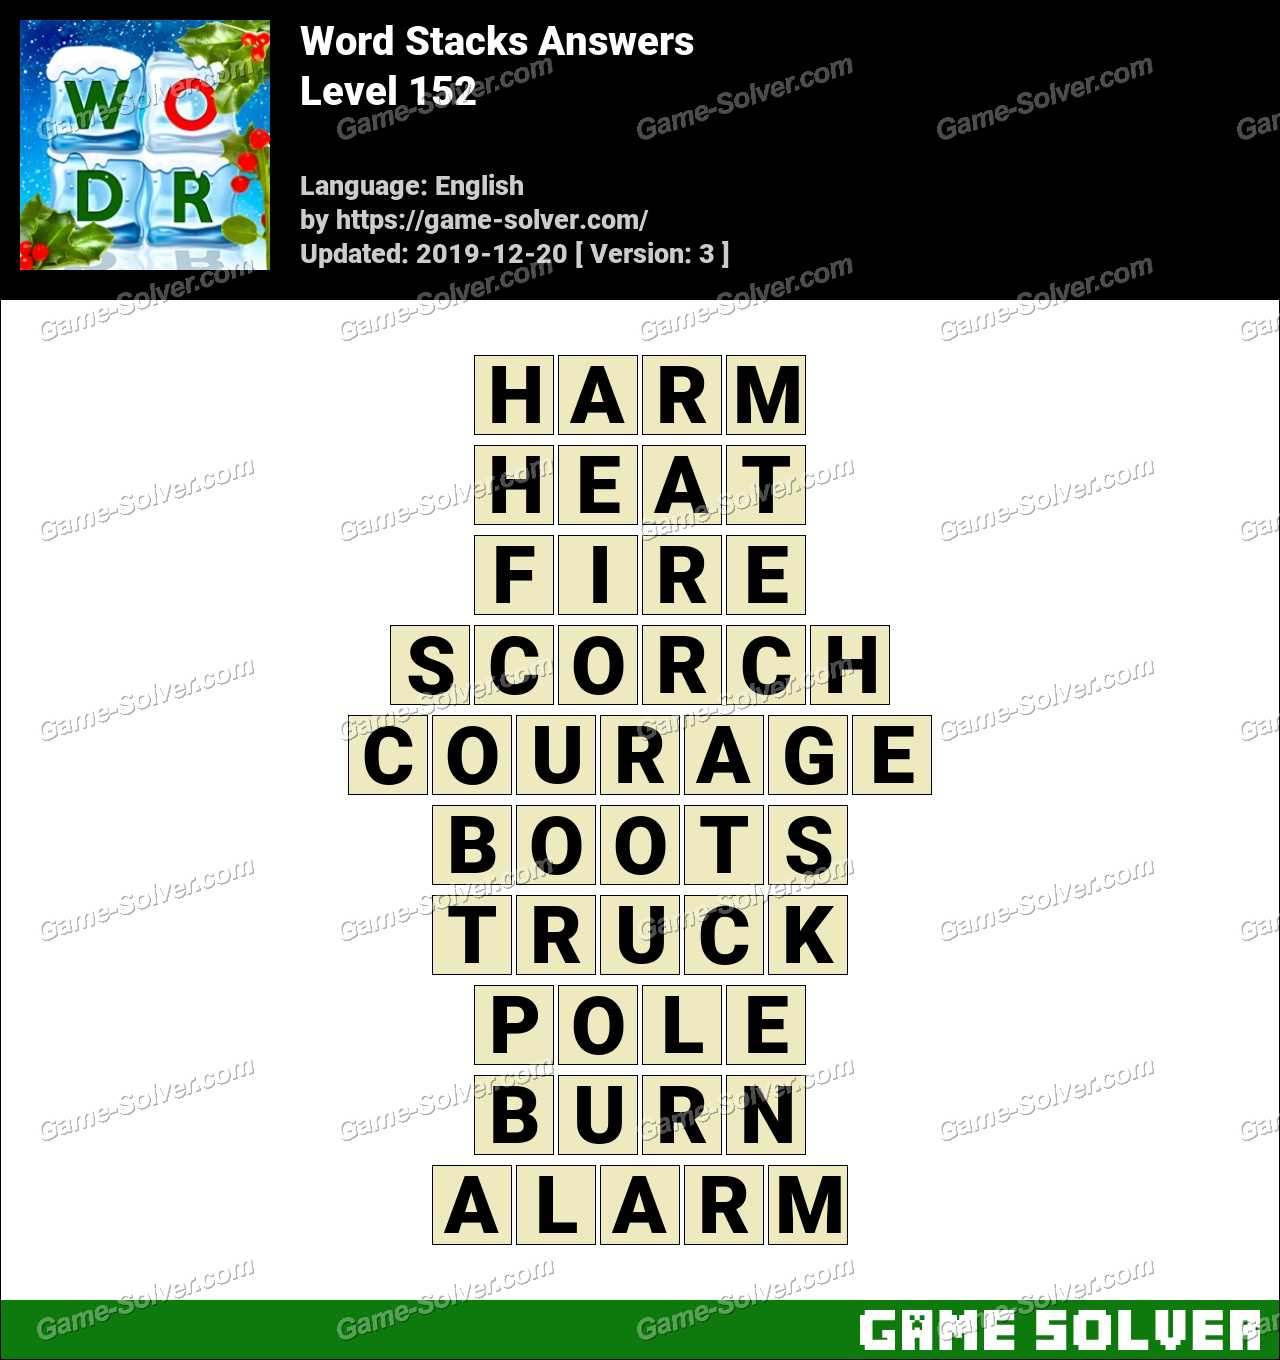 Word Stacks Level 152 Answers